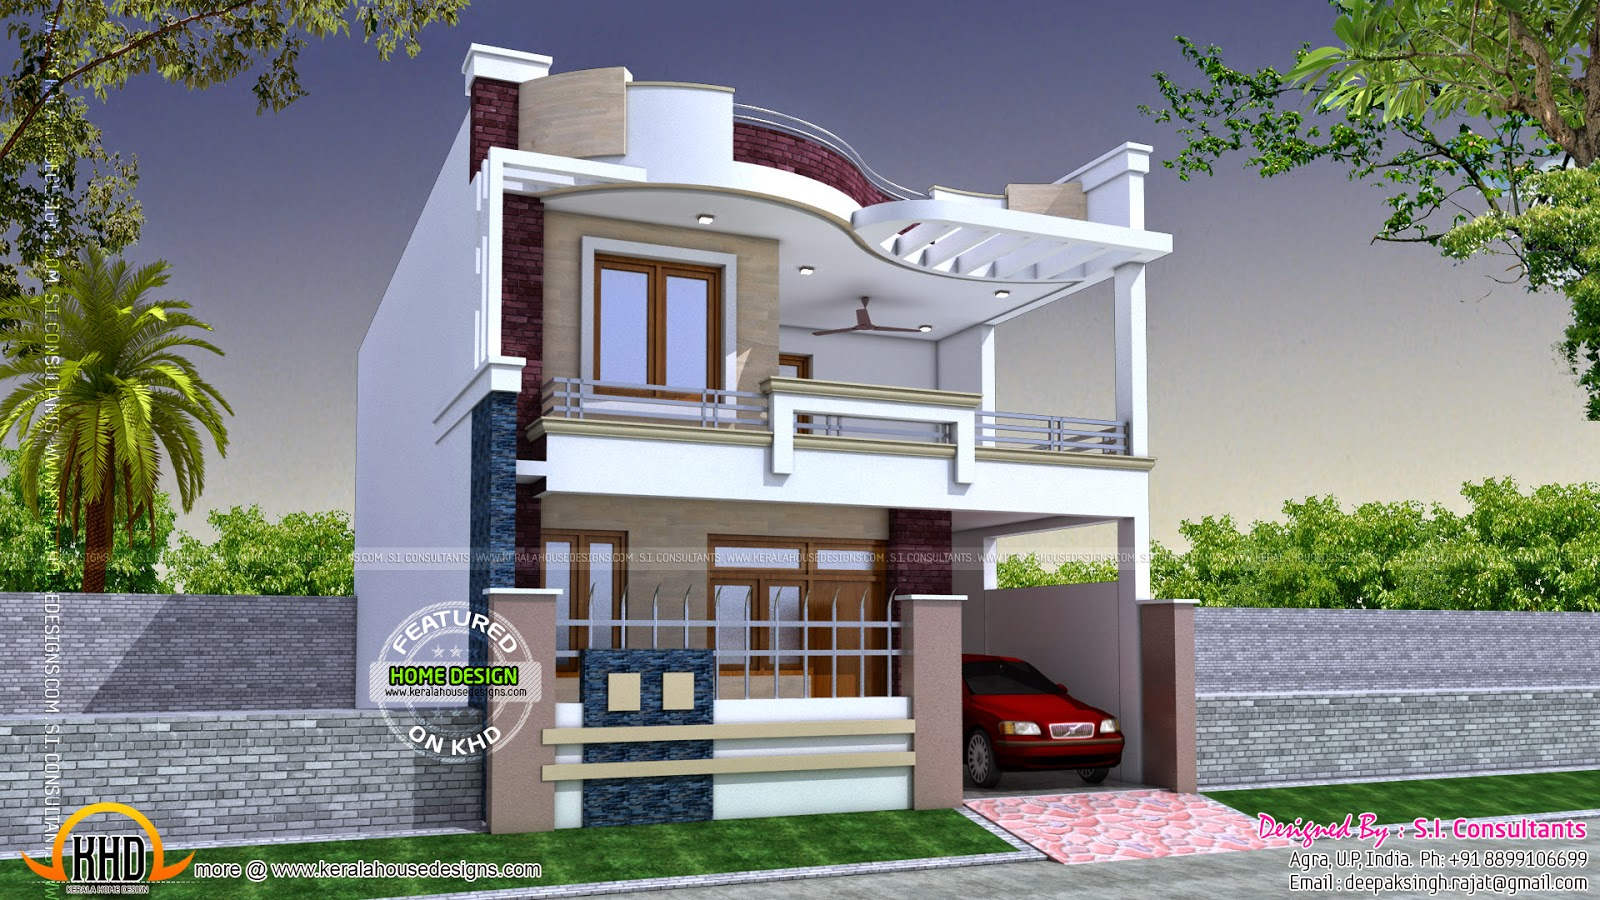 Modern indian home design kerala home design and floor plans for Floor plans of houses in india